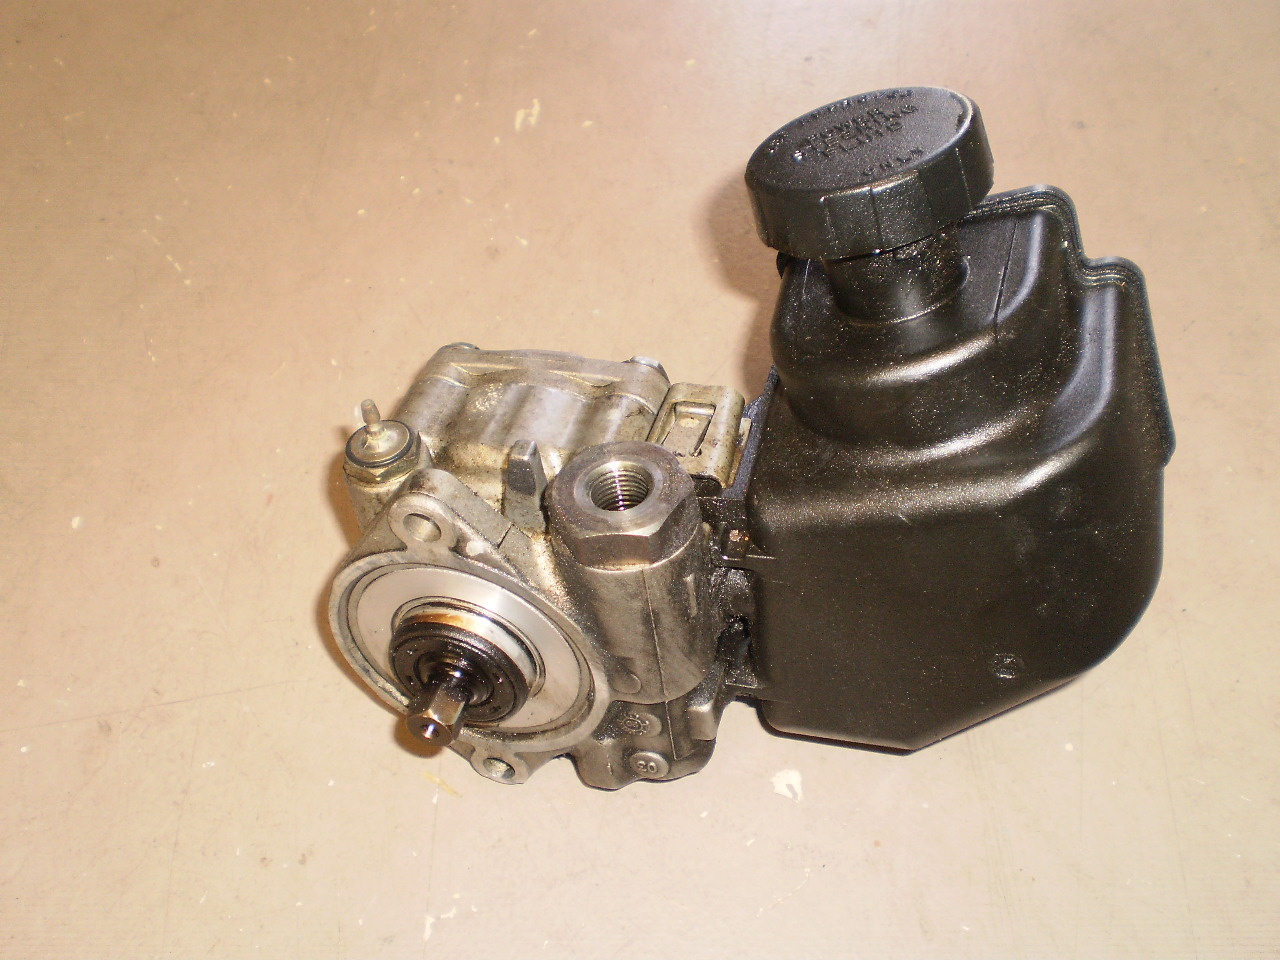 03-07 SAAB 9-3 power steering pump